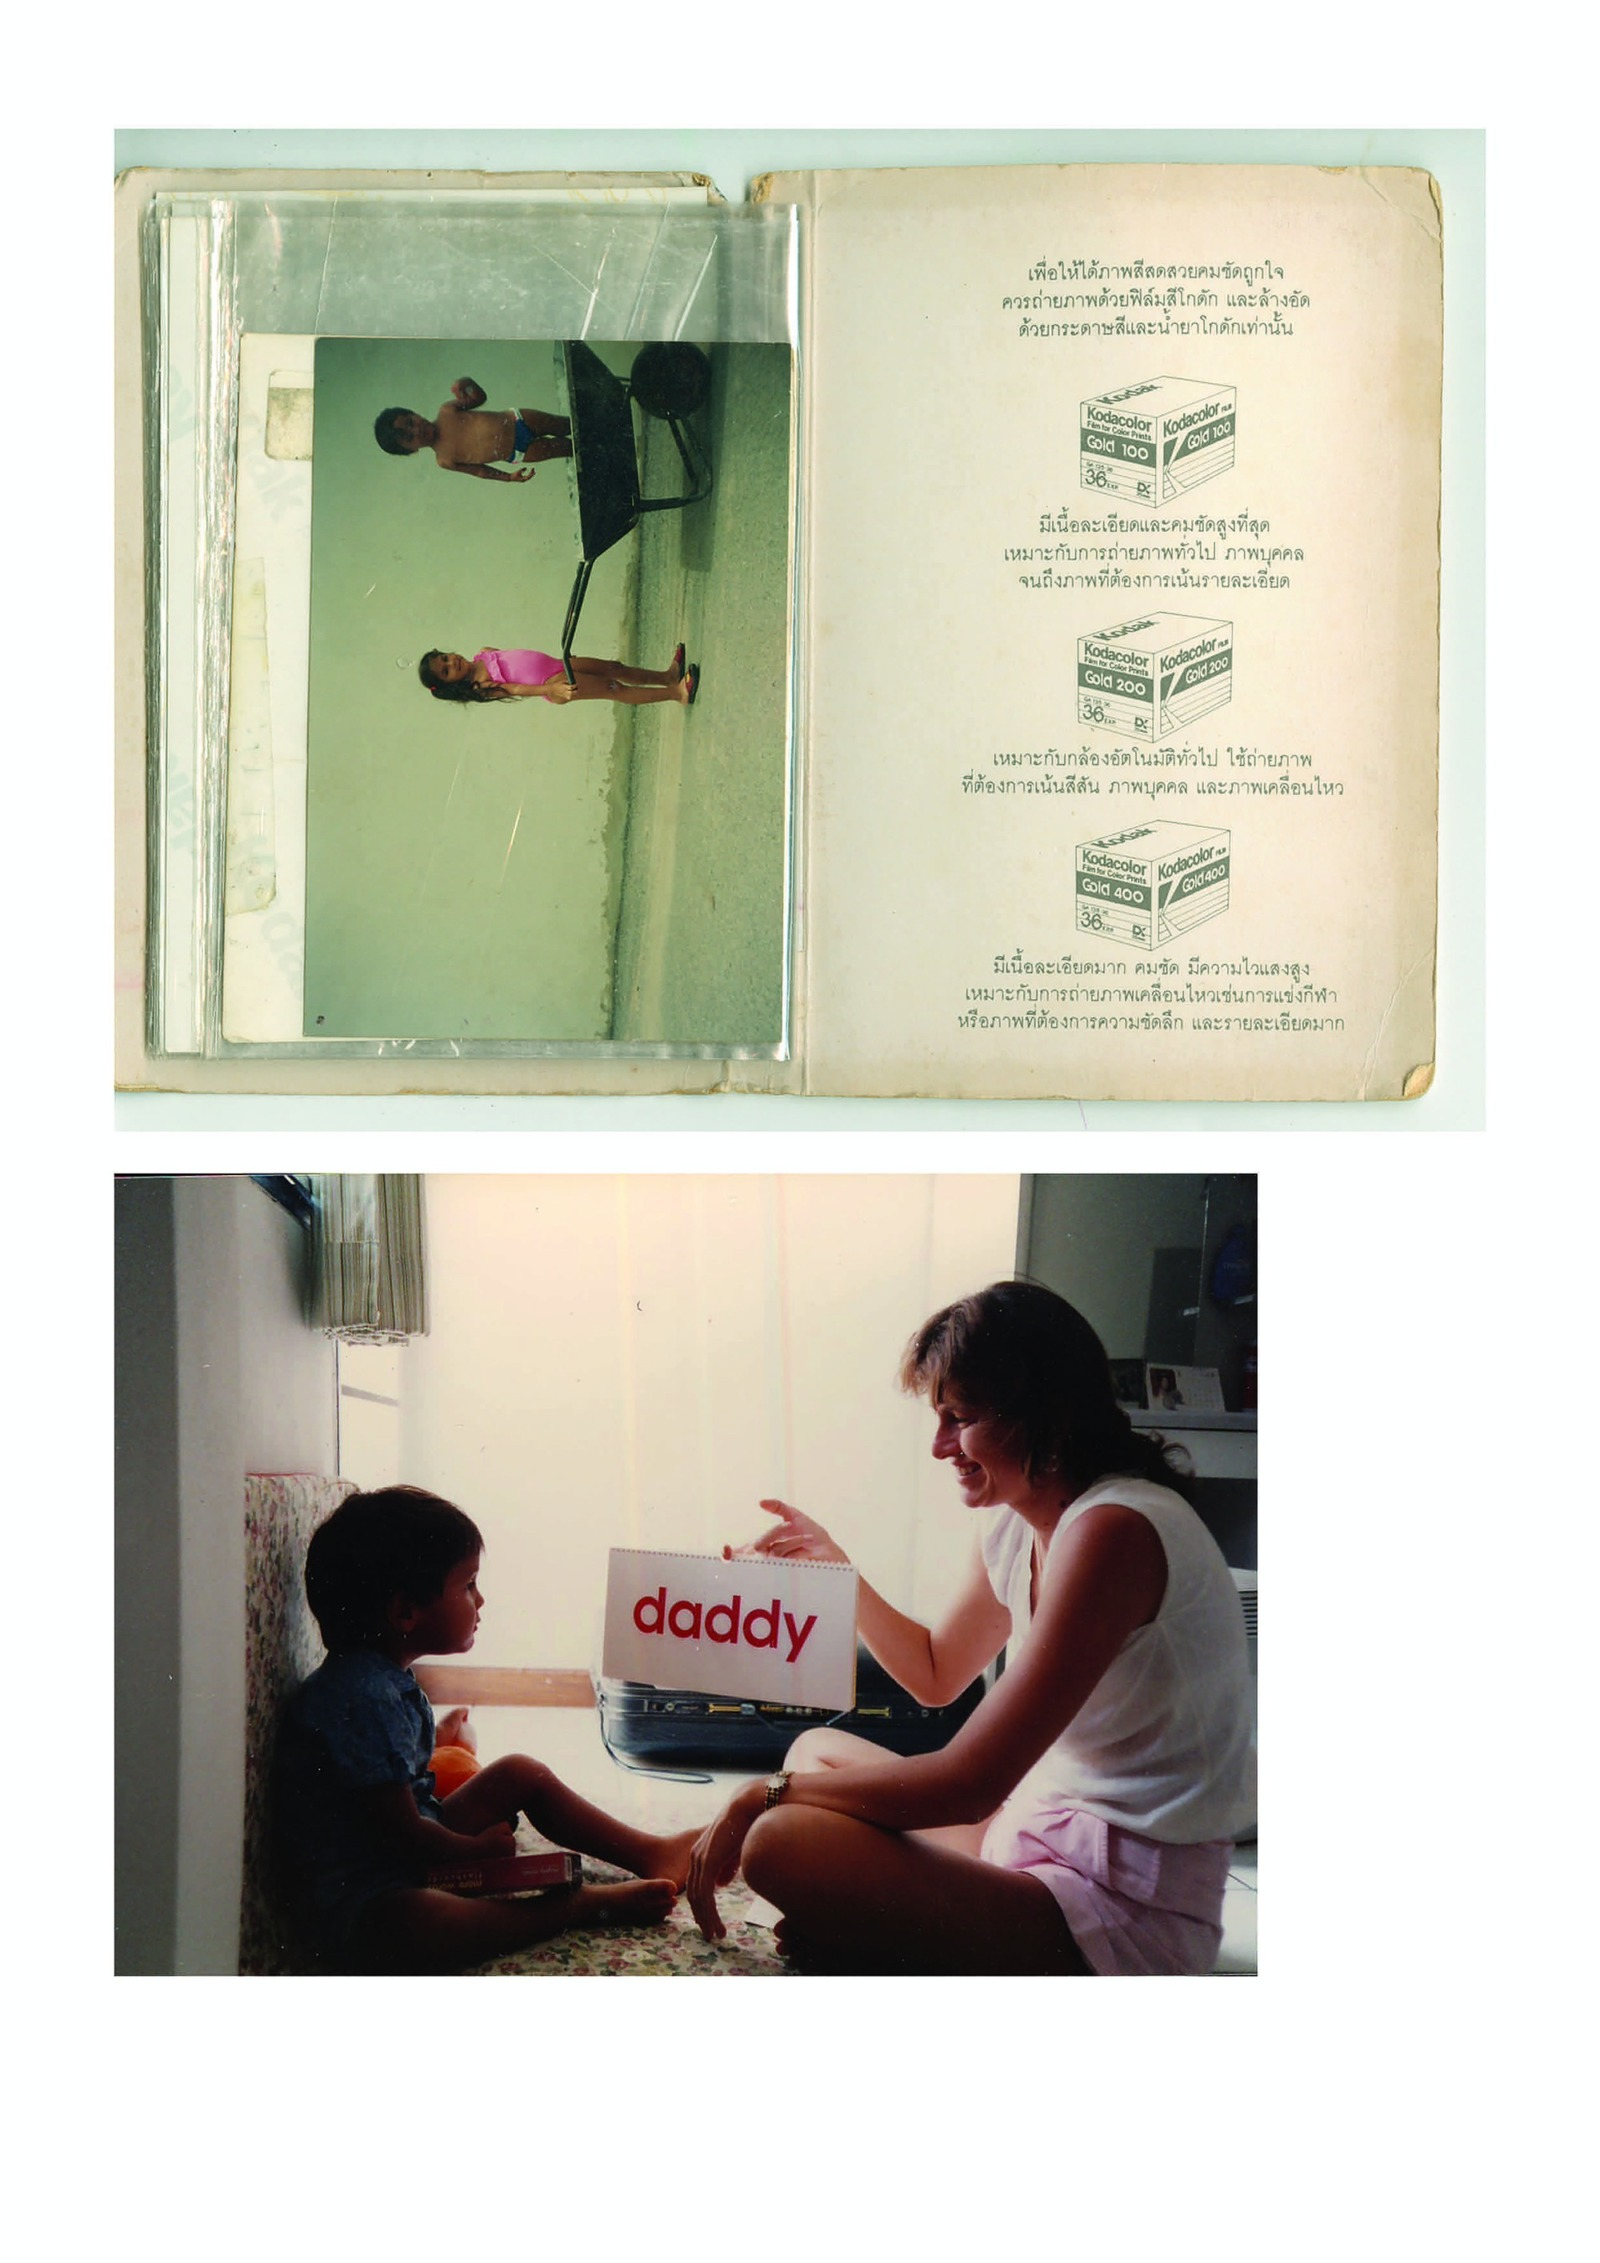 A pair of photographs, a scanned family album above a photograph of a woman and child, the woman holds a flashcard saying 'daddy'.